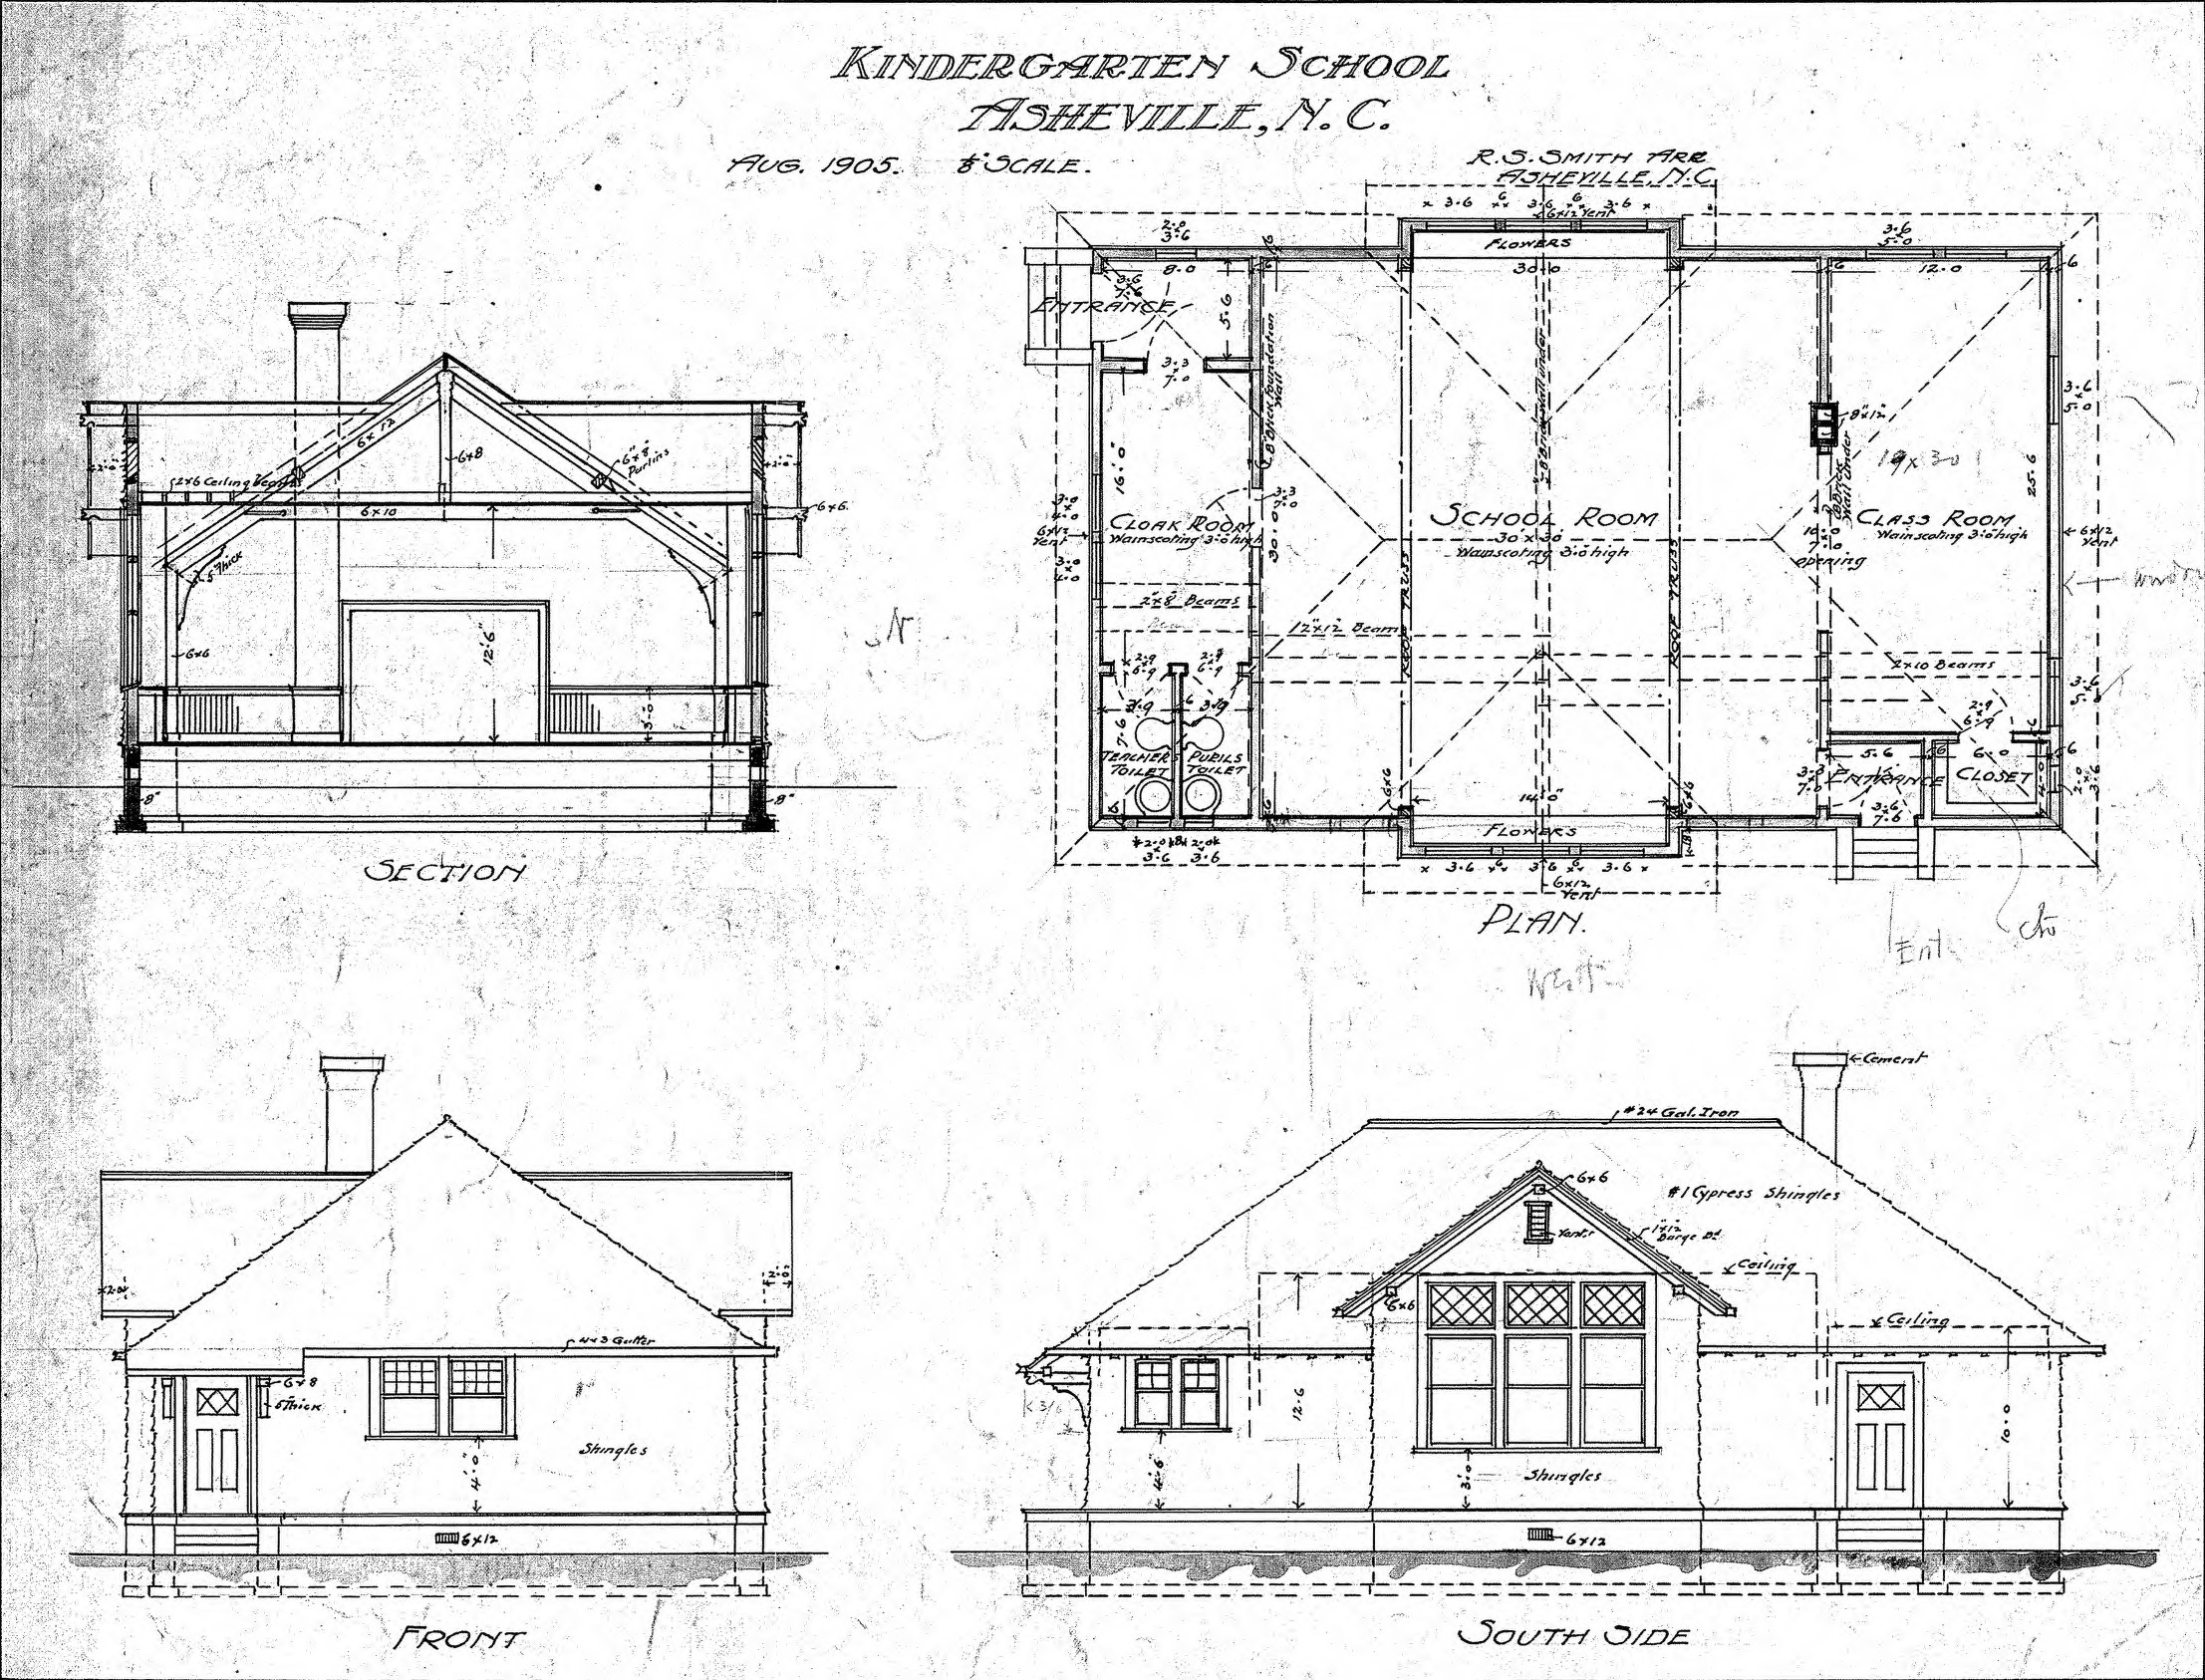 House plans and design architectural house plans elevations for Architectural house plans